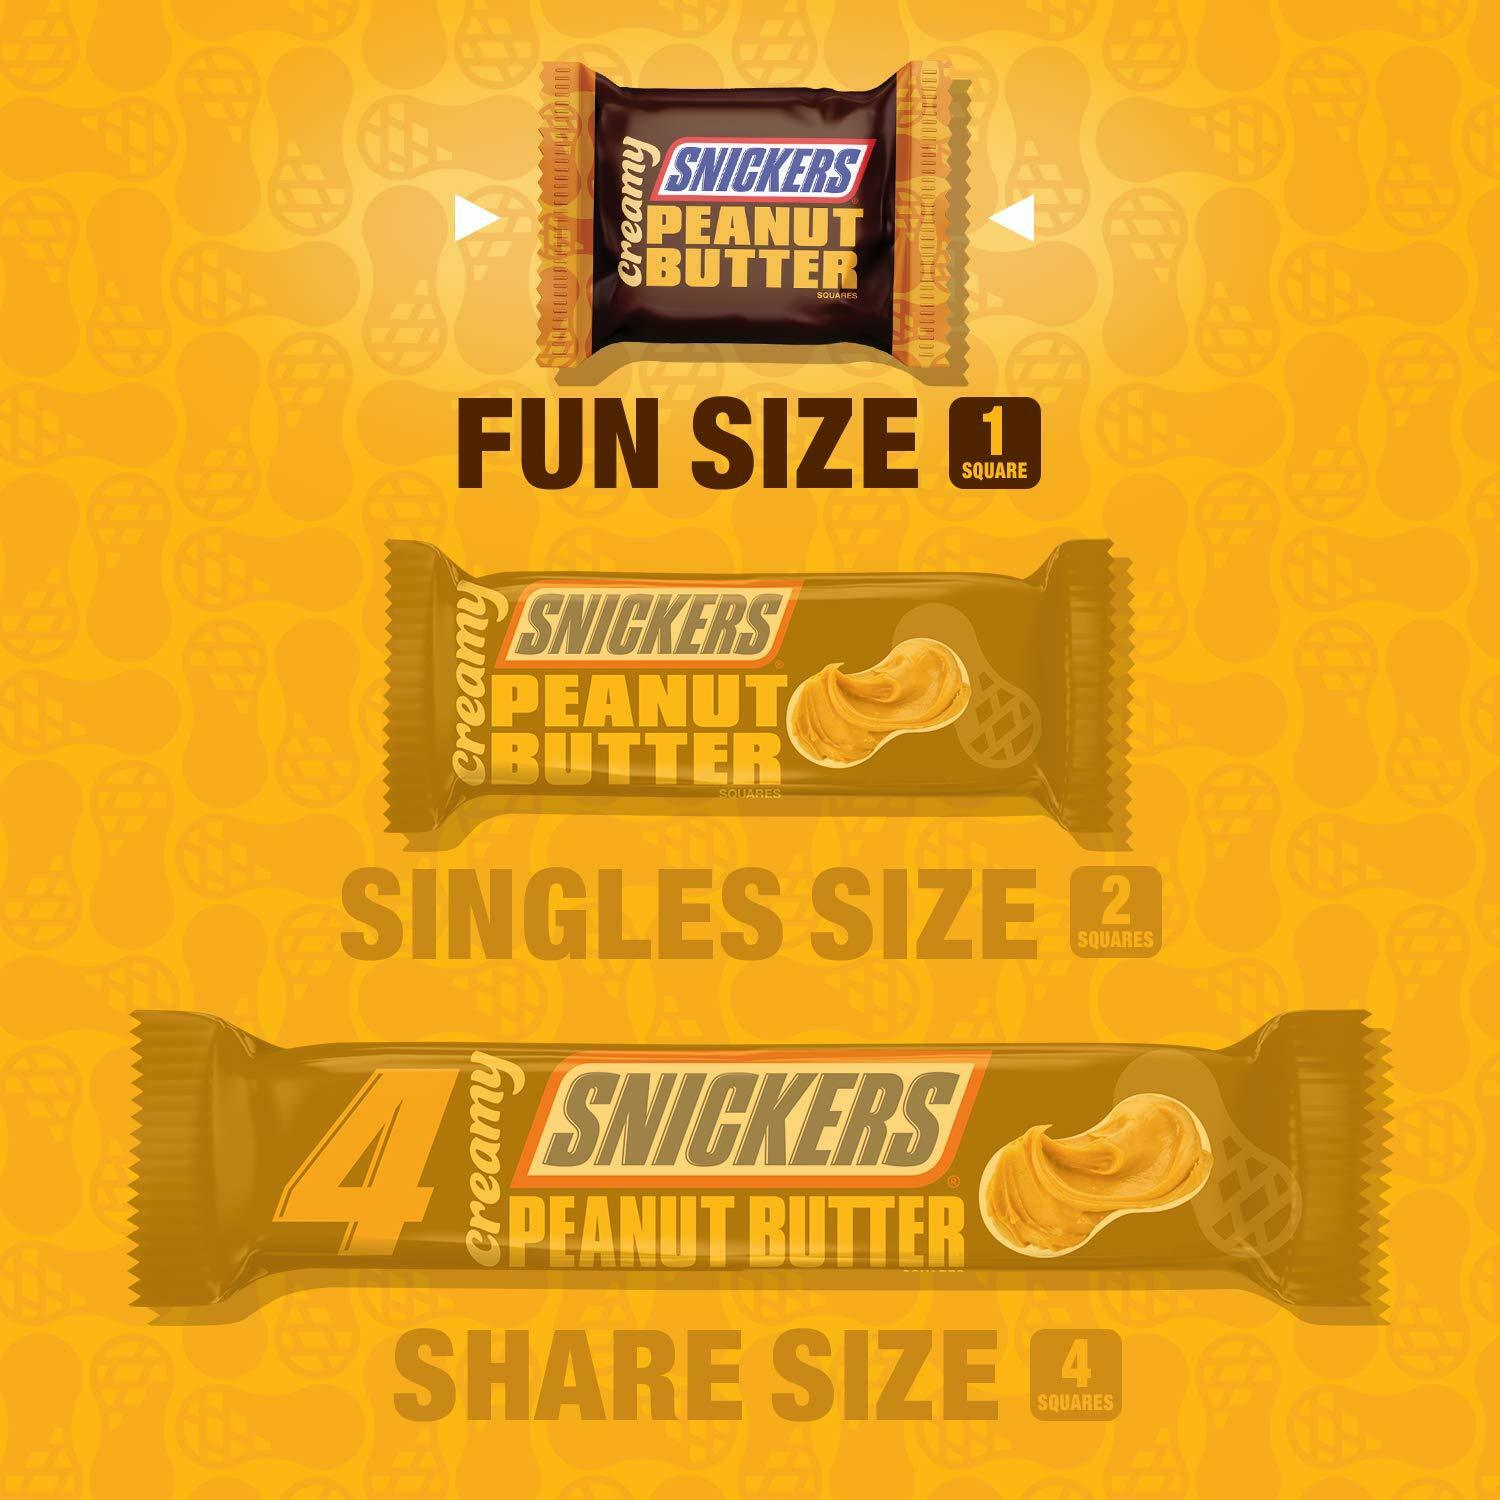 Snickers Creamy Peanut Butter Square Candy Bars, 7.7 Ounce Bag